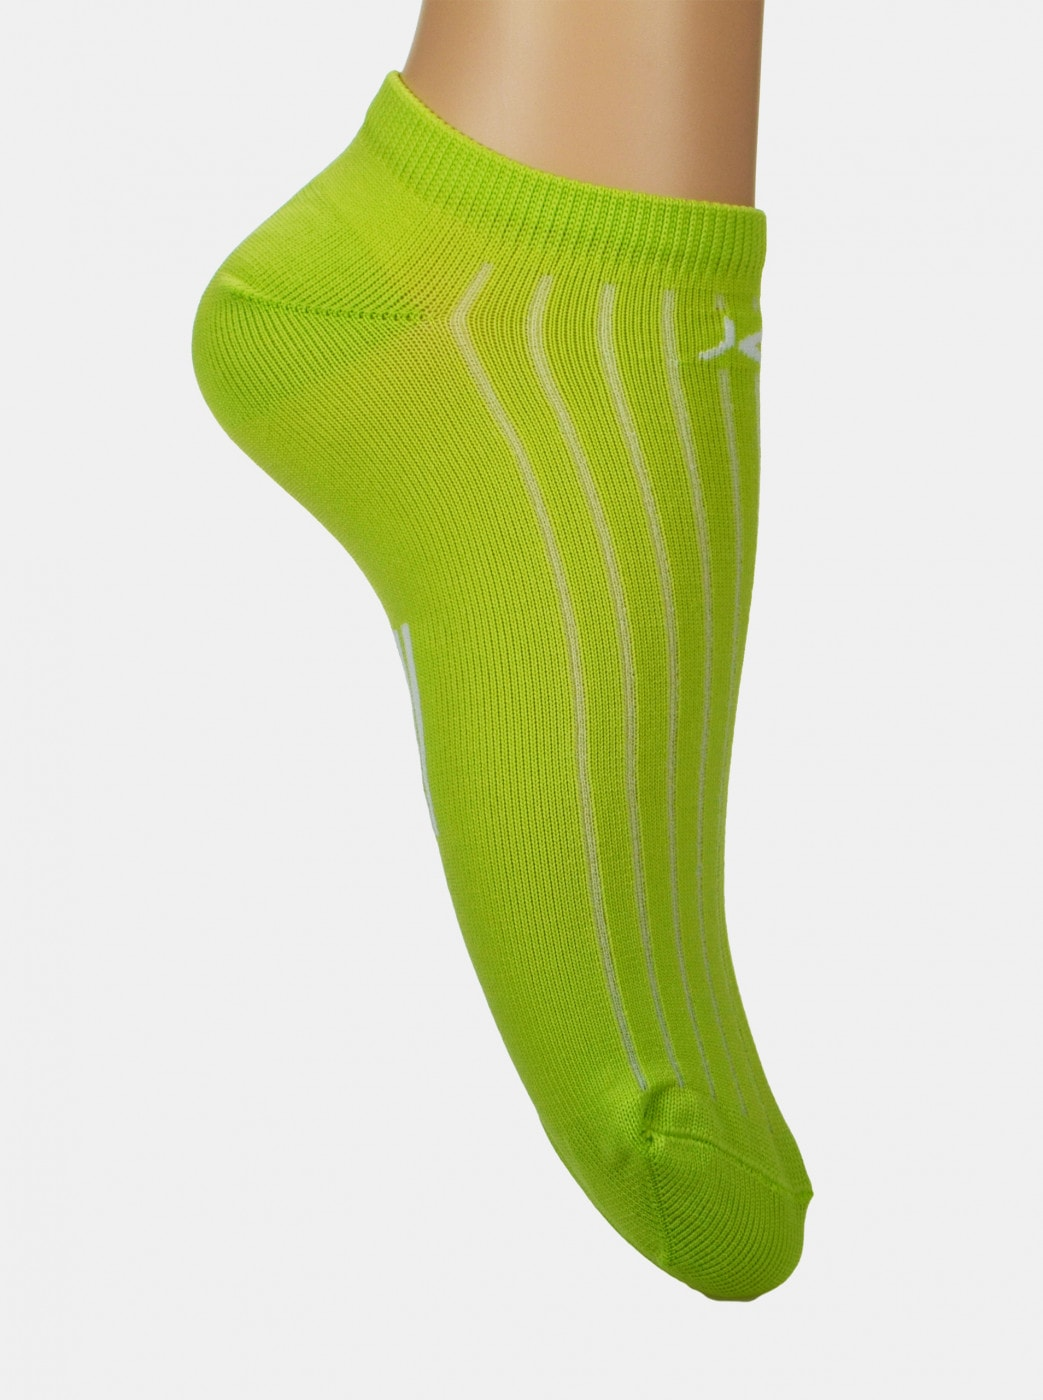 Marie Claire Green Ankle Socks